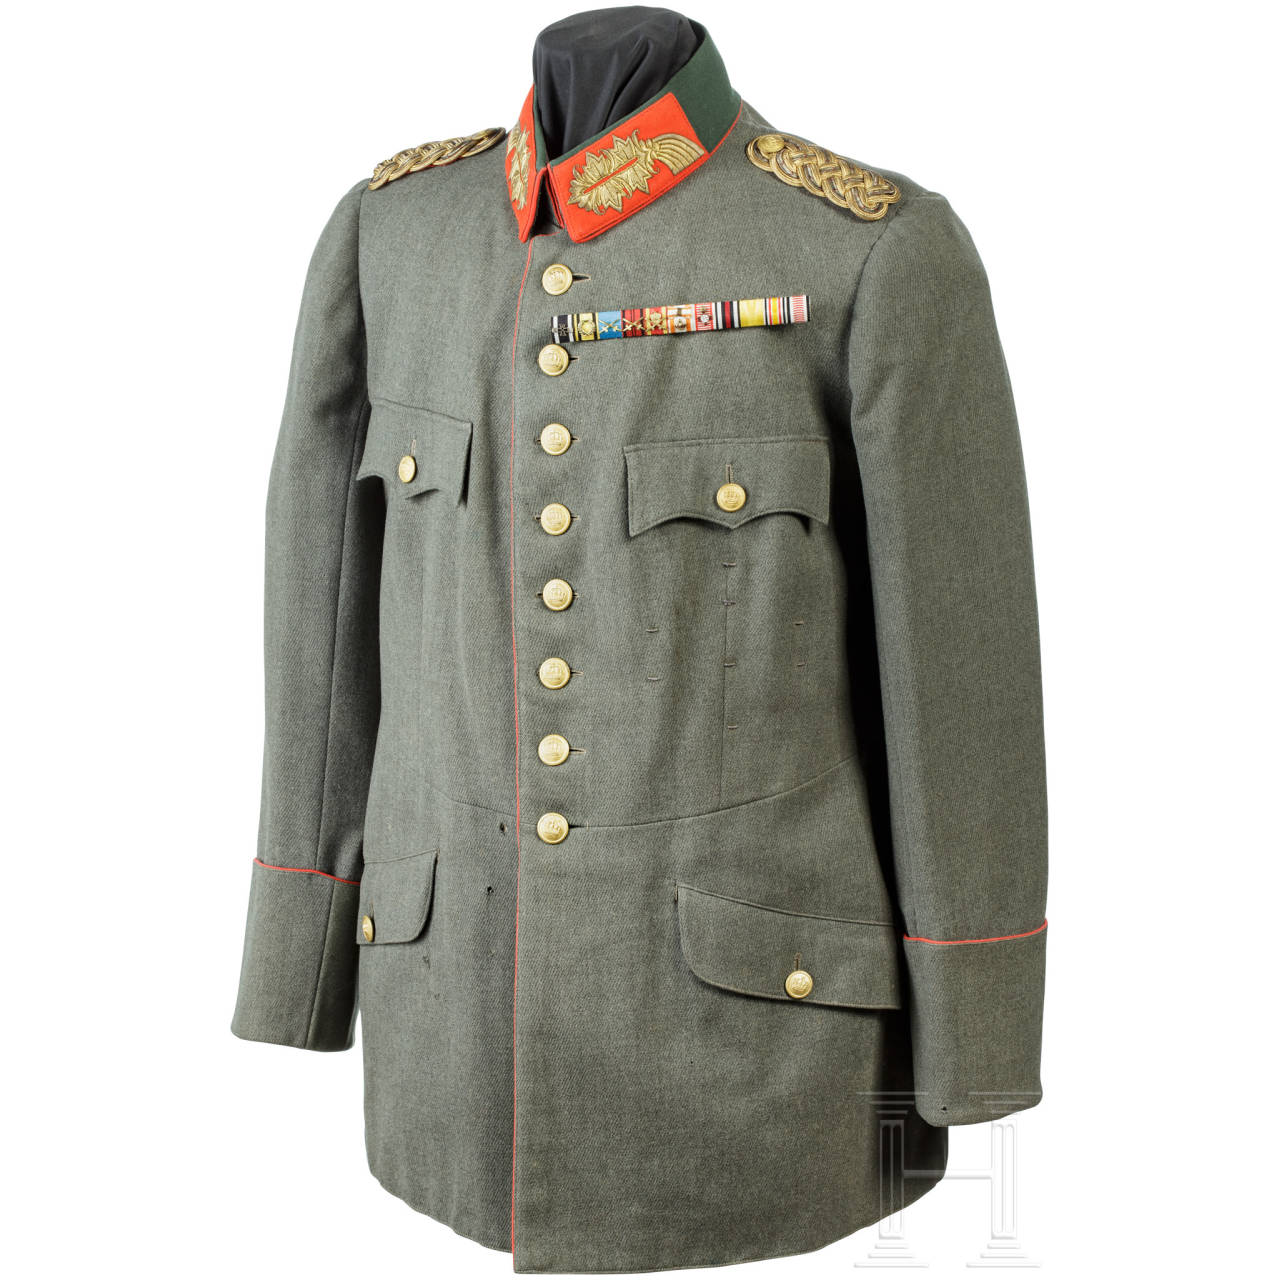 Tunic M1910 for a Generalmajor of the Württemberg army